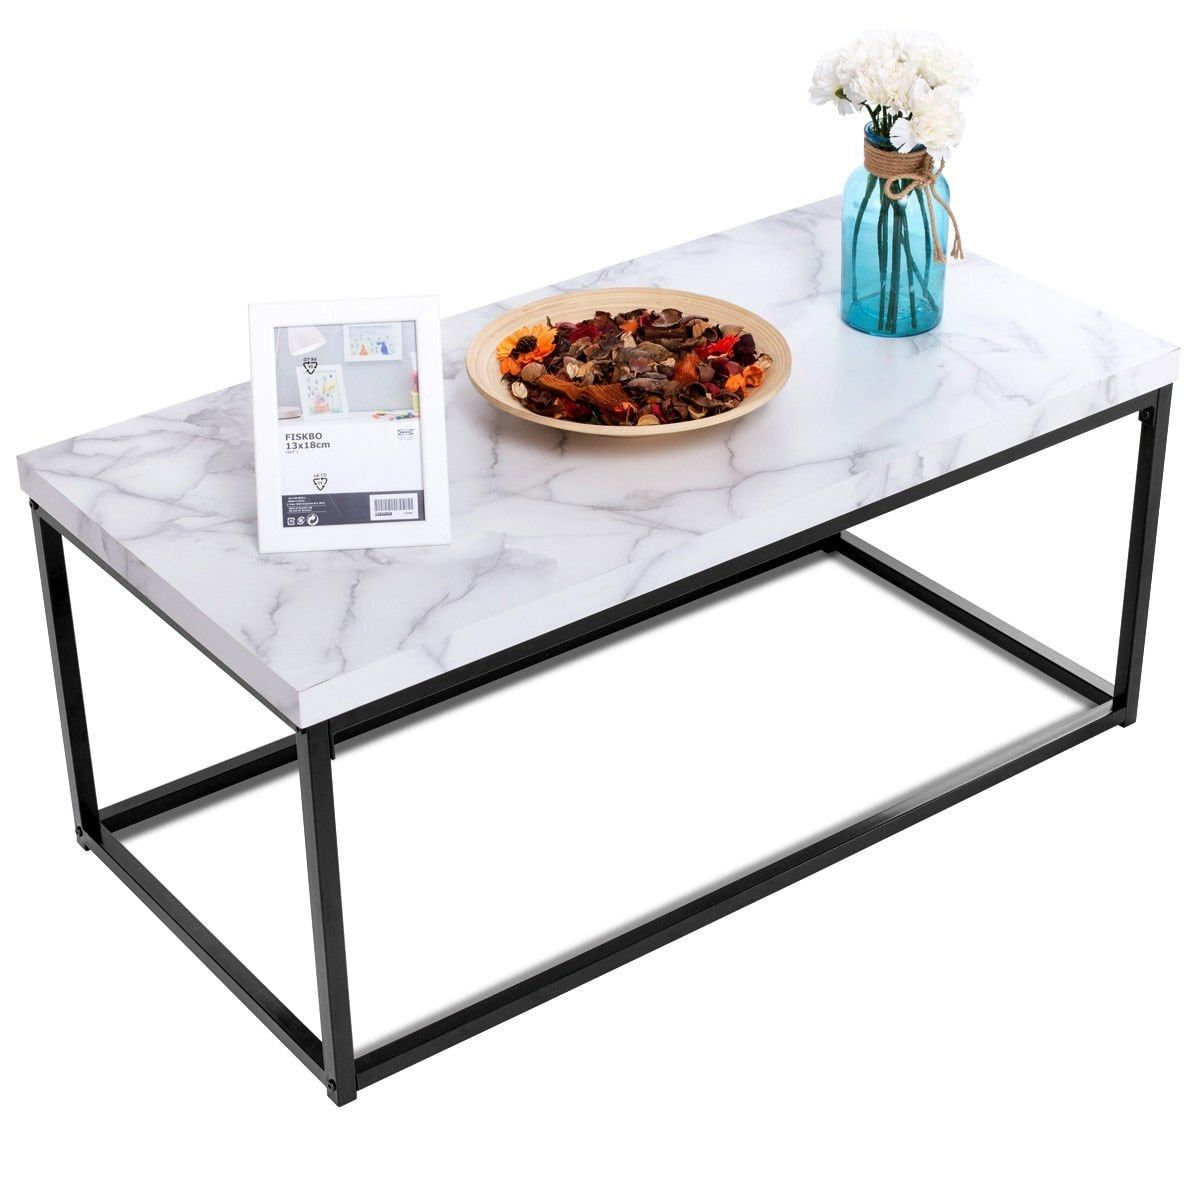 Our Best Living Room Furniture Deals Coffee Table Metal Frame Living Room Decor Furniture Metal Coffee Table [ 1200 x 1200 Pixel ]